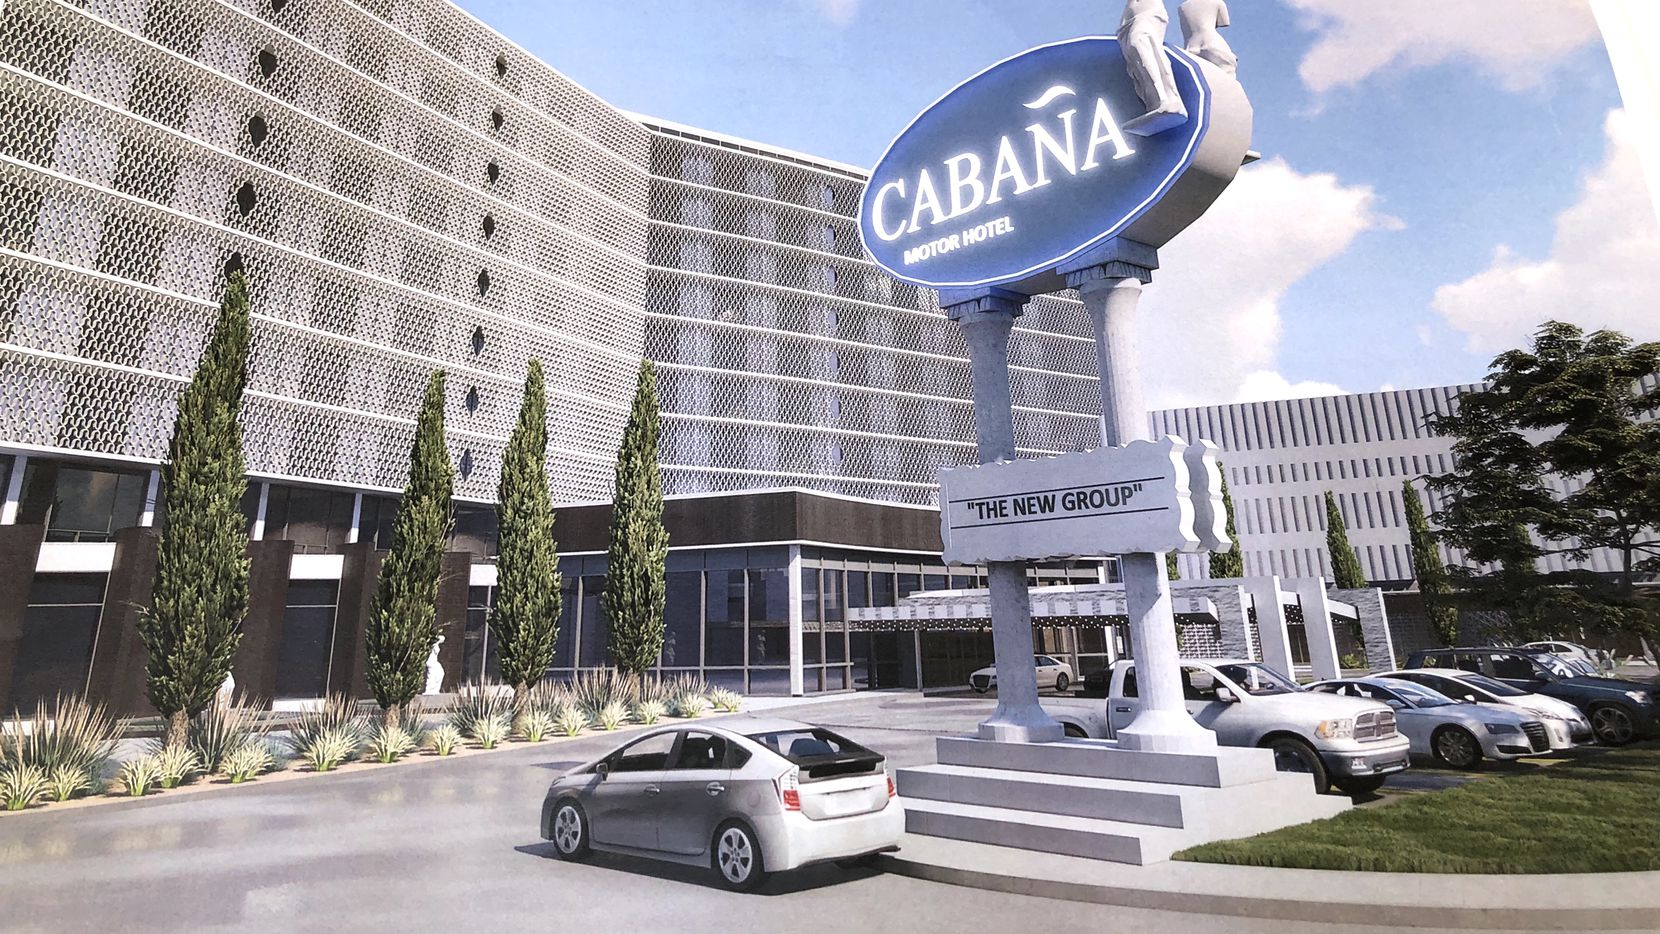 The Cabana Hotel on Stemmons Freeway is set for a redevelopment, as shown in this artist's rendering.